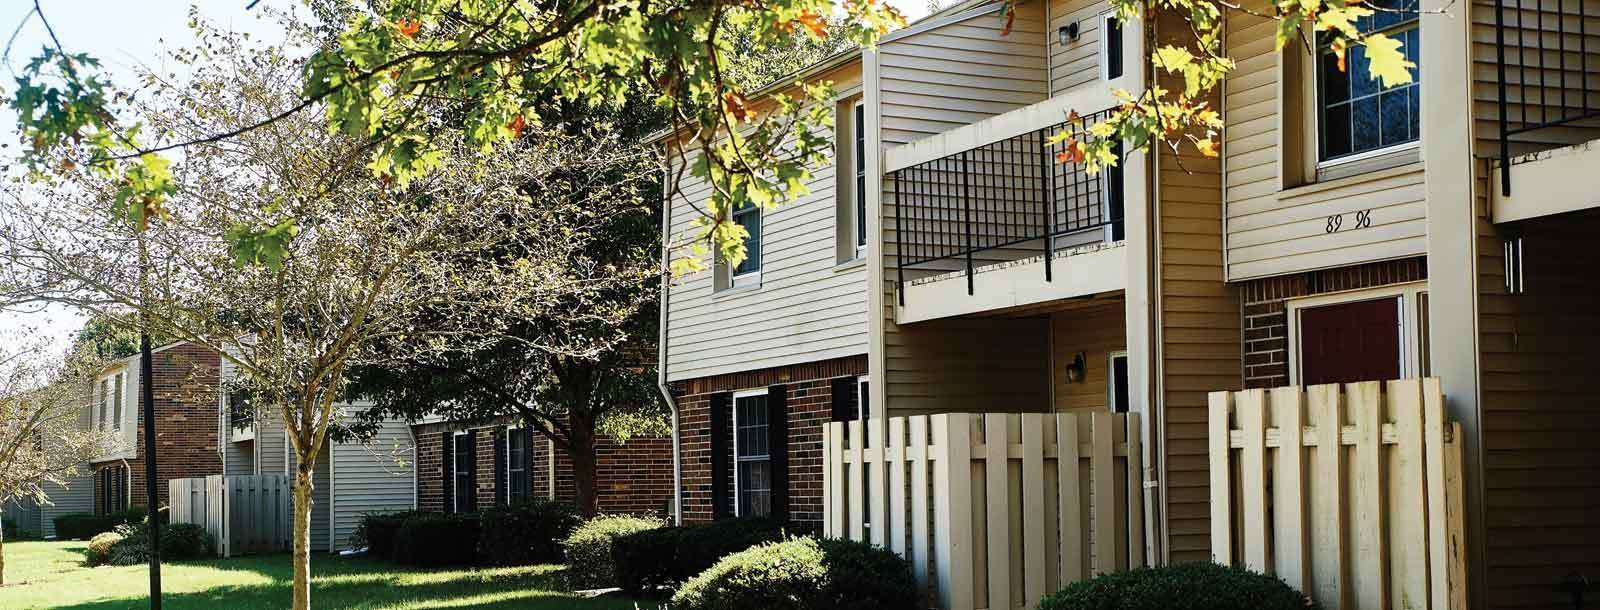 Best Regency Park Bowling Green Apartments In Bowling Green Ky With Pictures